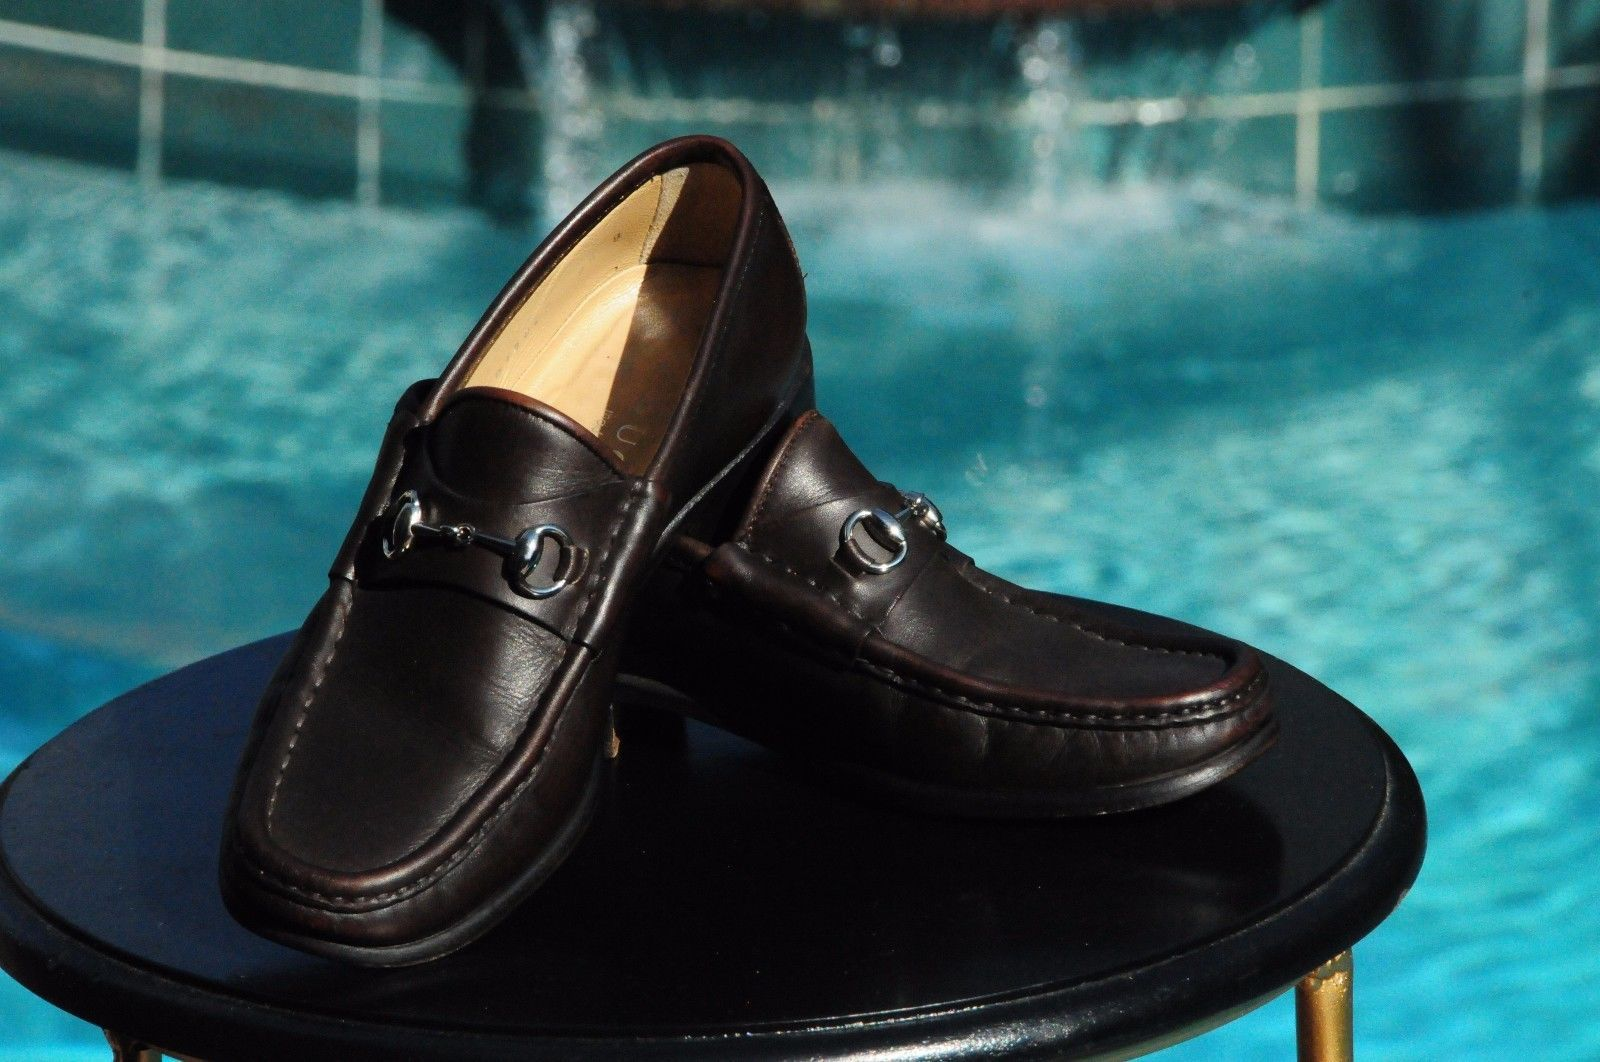 Leather loafers, Gucci shoes, Loafers